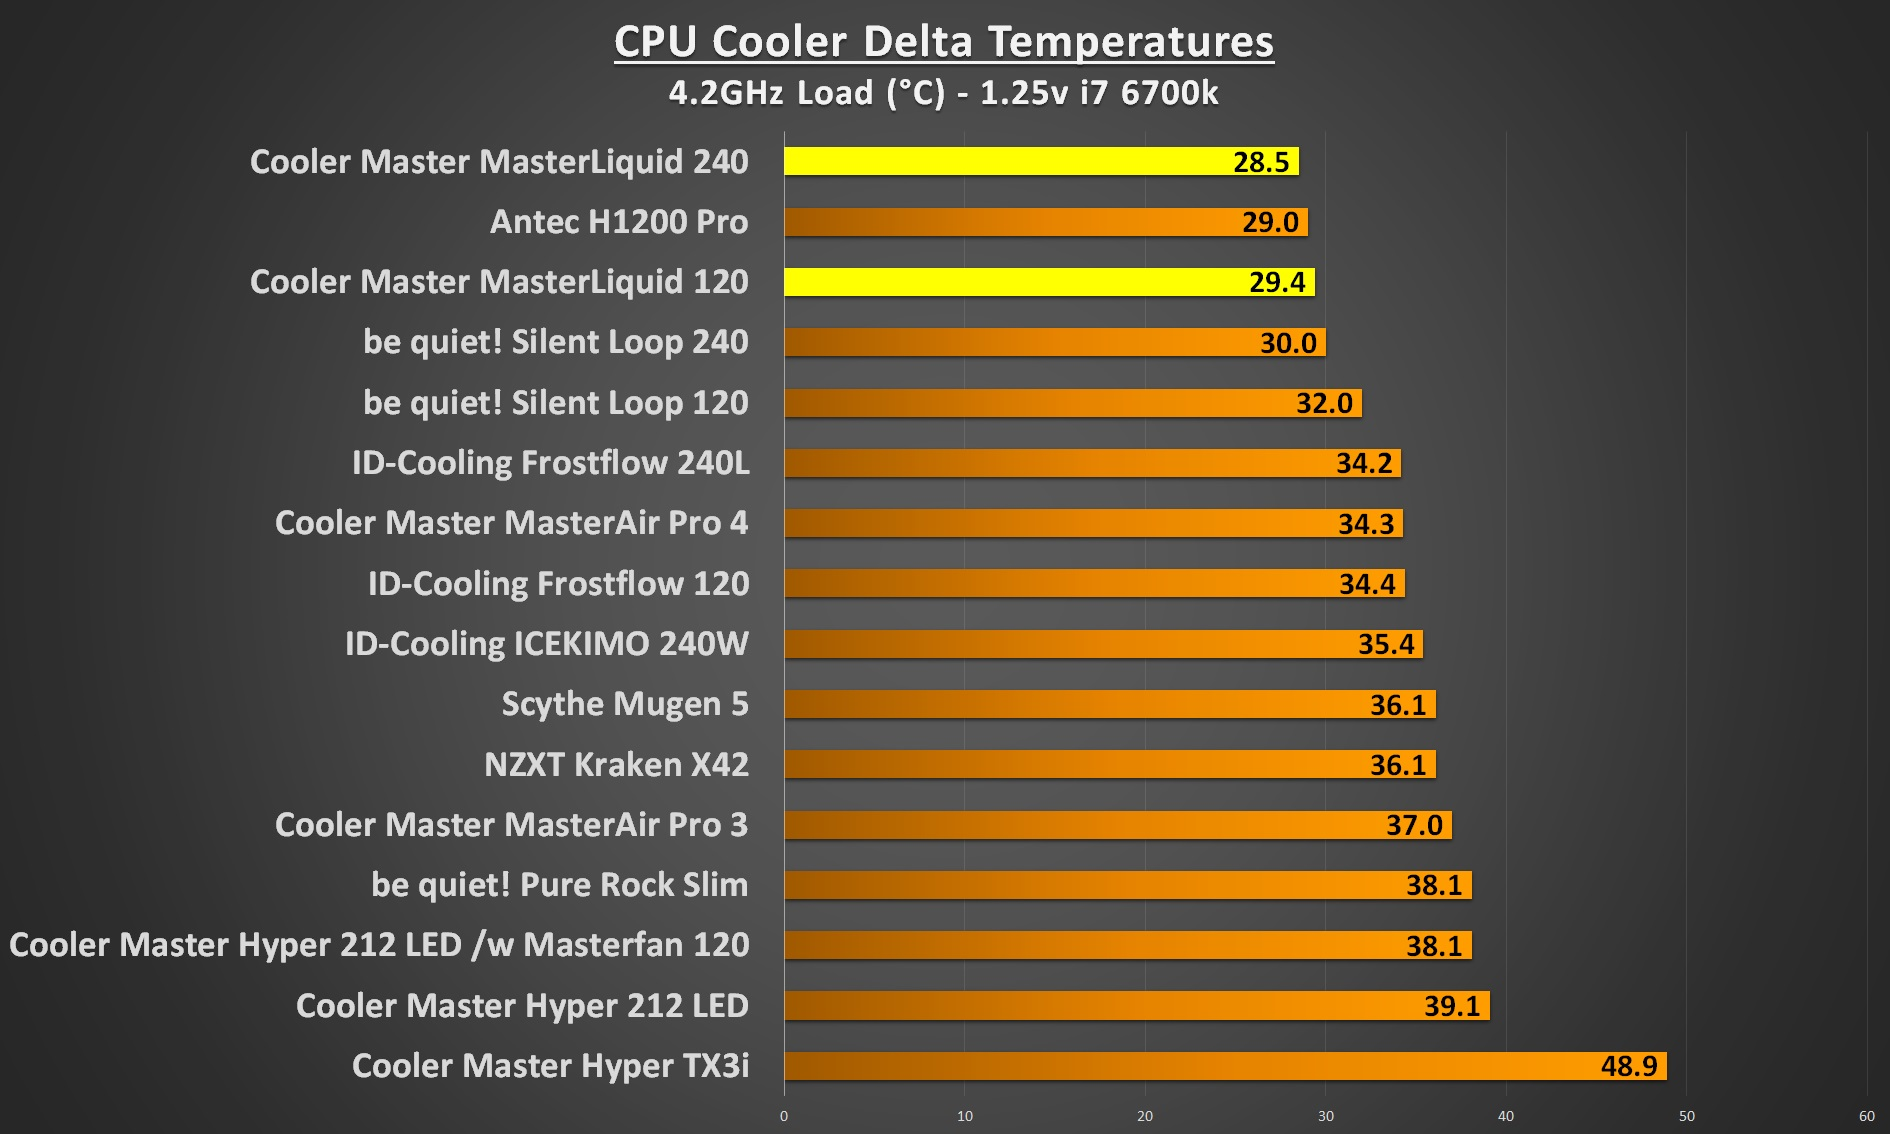 cooler master masterliquid 4.2Ghz load